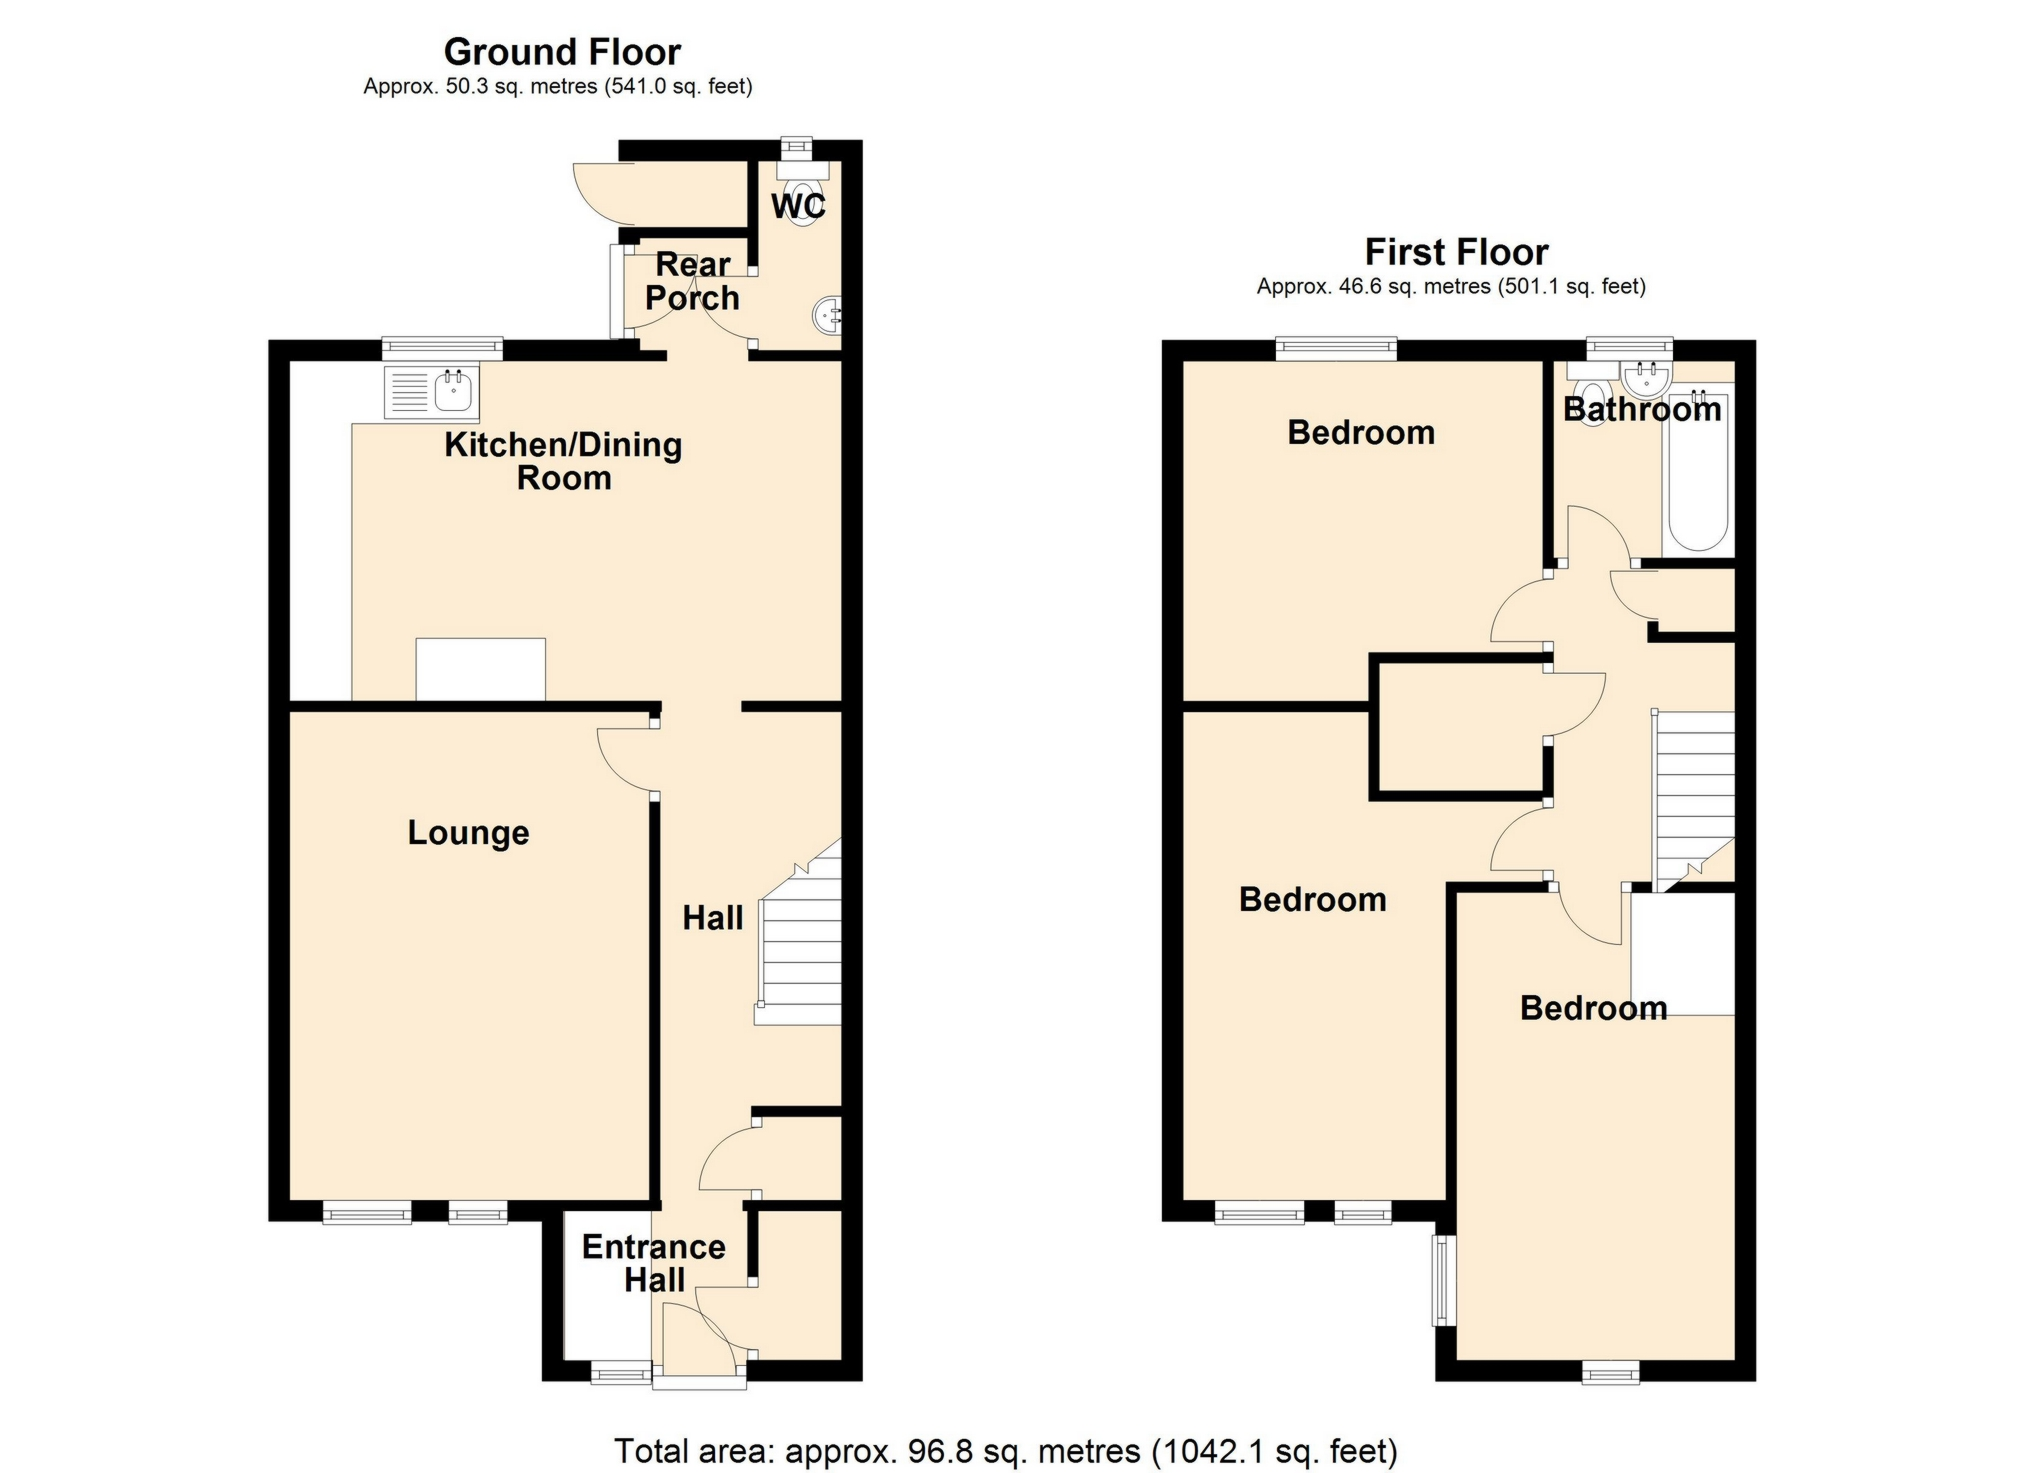 Combined Floor plan